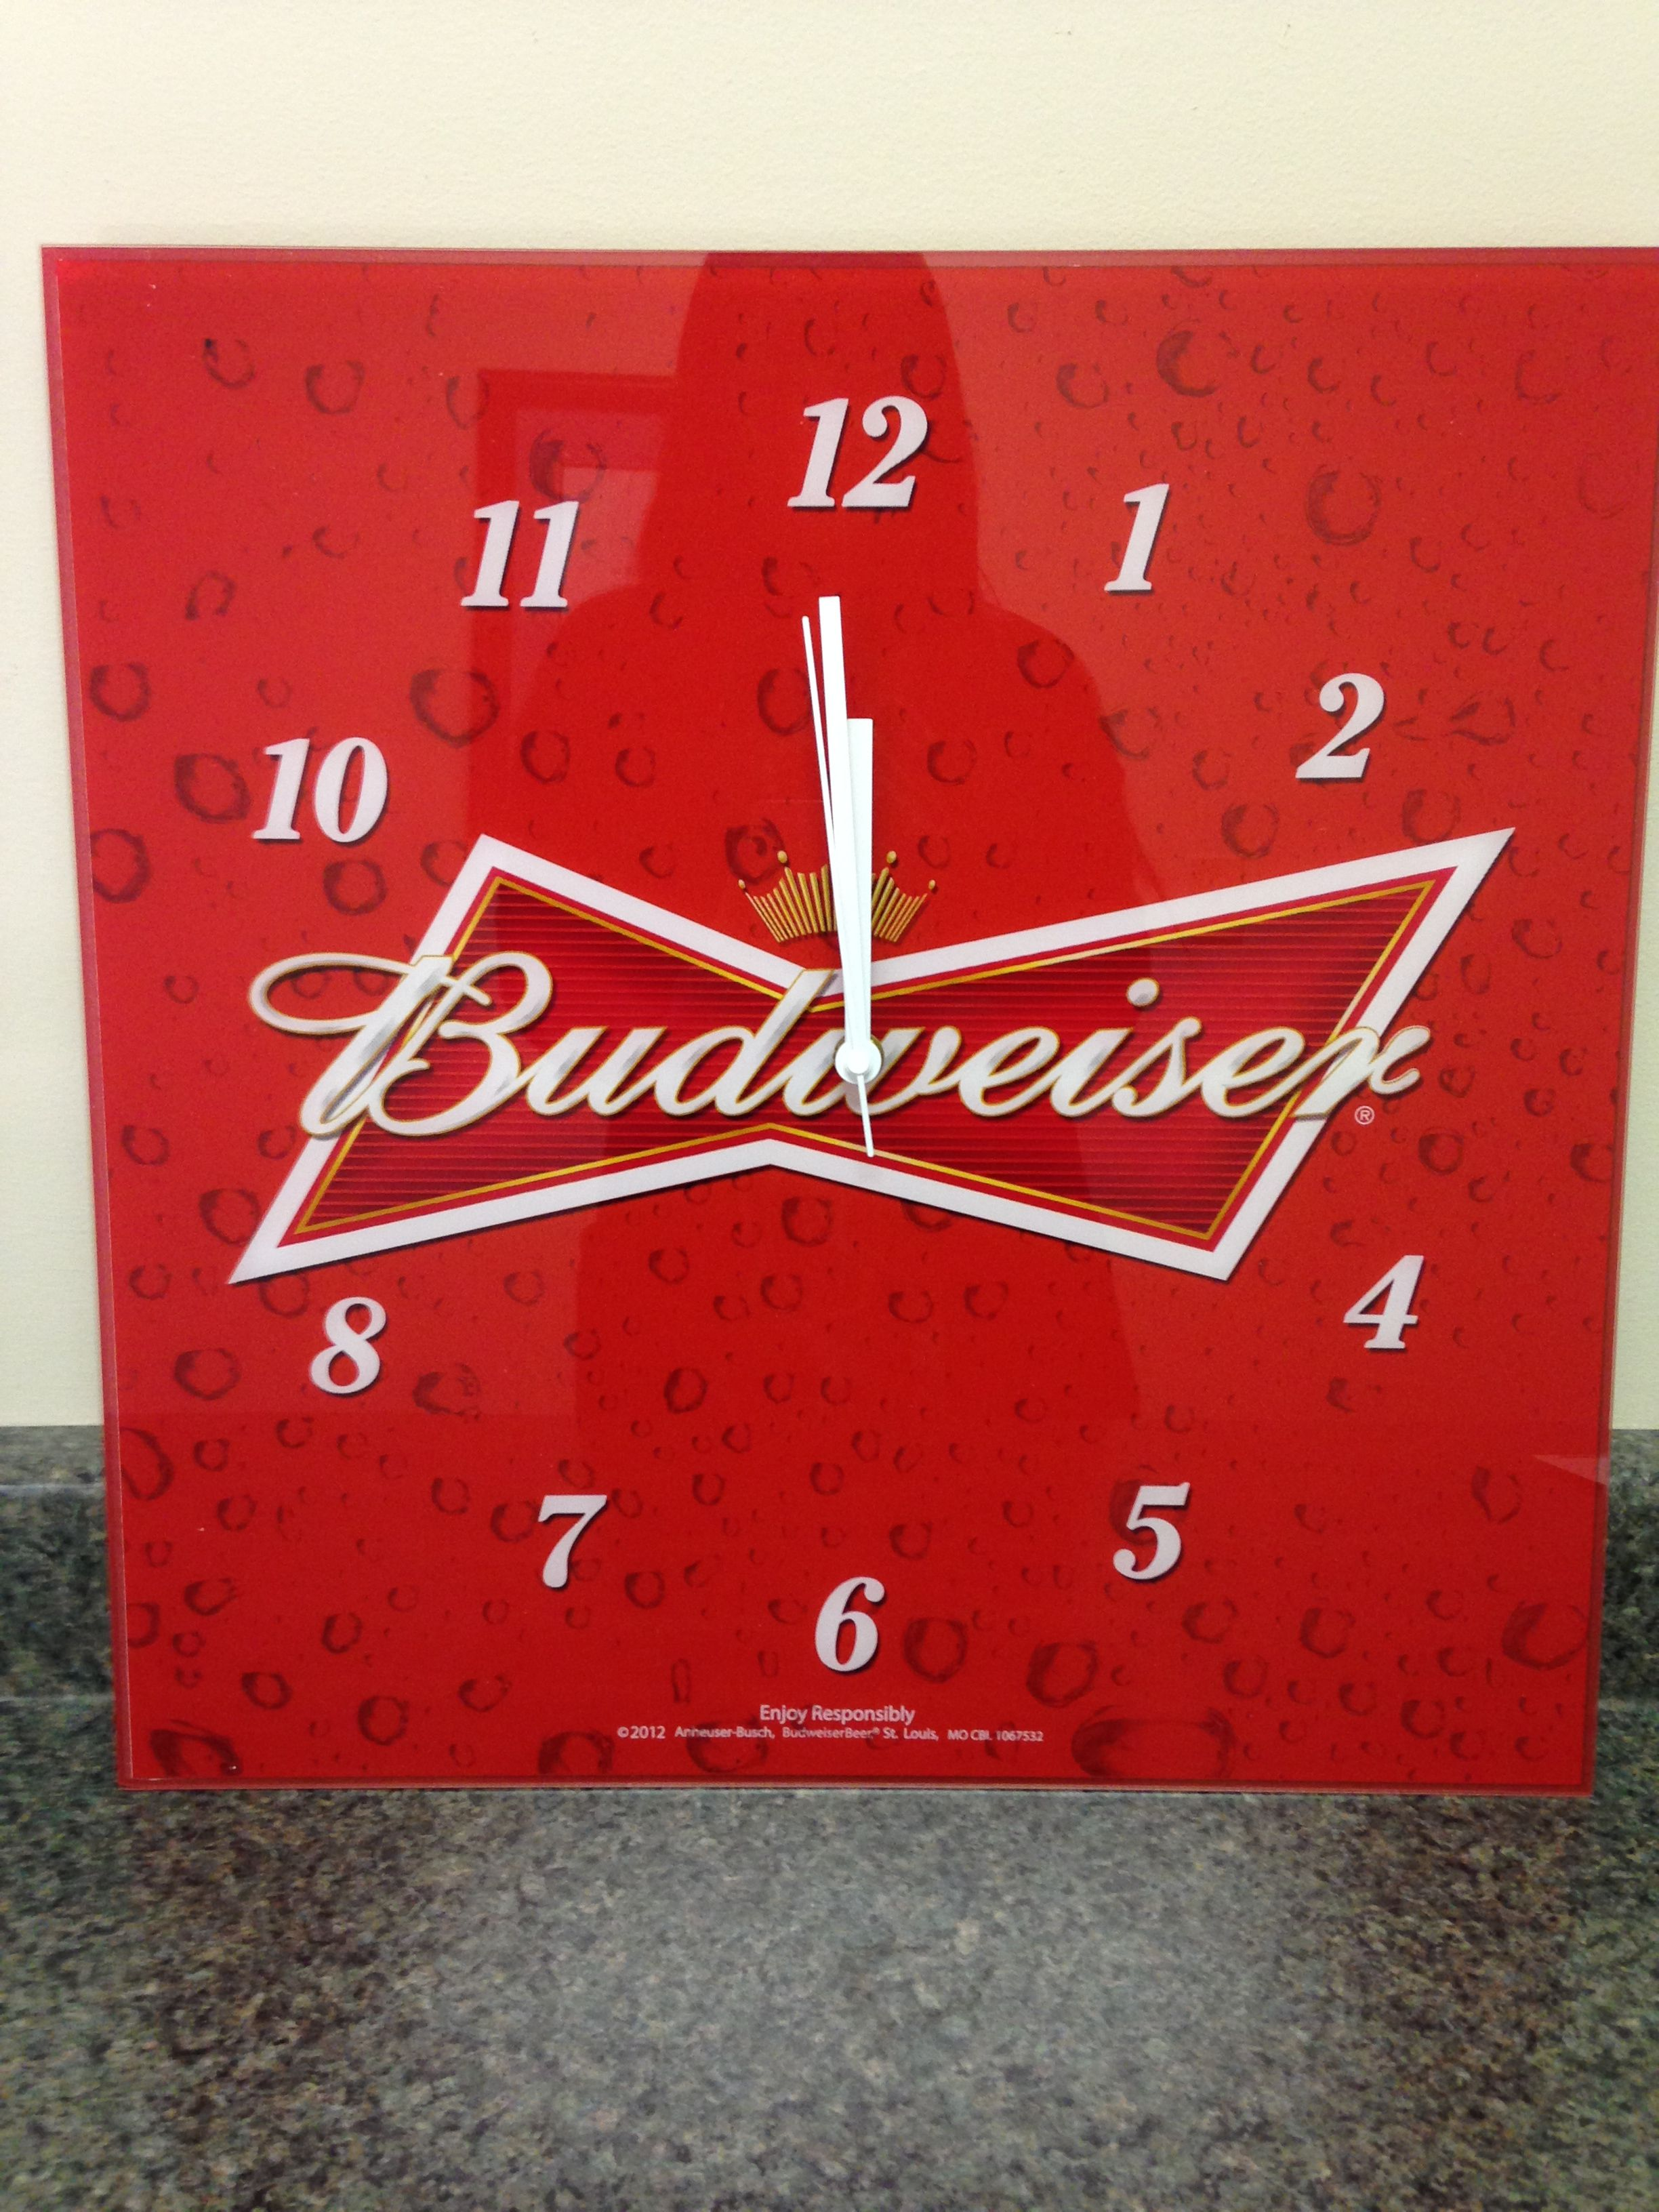 Bid on this Budweiser clock, plug in and add lots of excitement to any fun, sports watching area in your house.